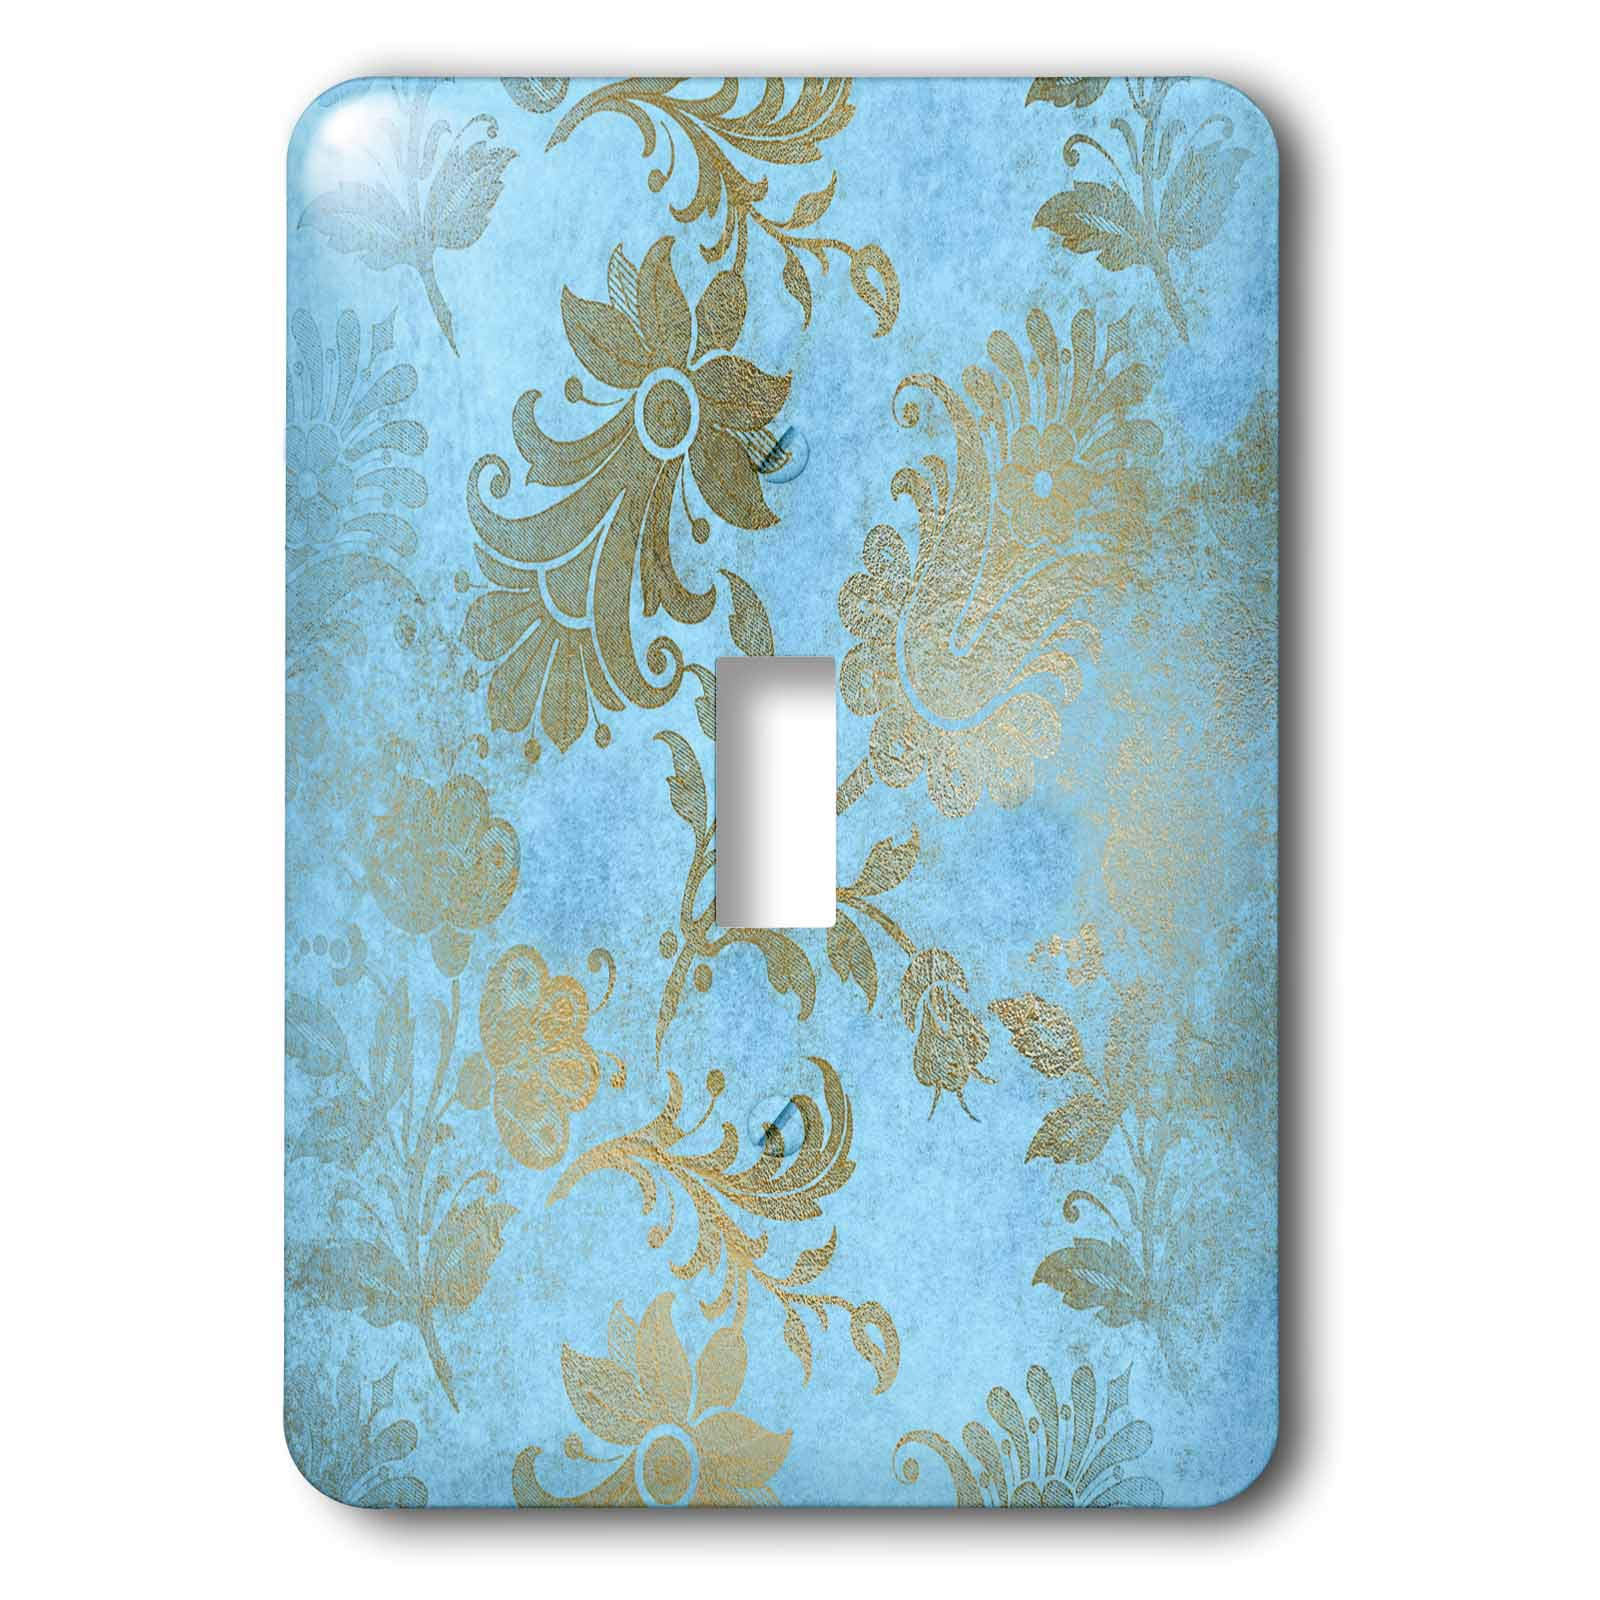 3dRose Uta Naumann Faux Glitter Pattern - Image of Sky Blue and Gold Metal Foil Vintage Grunge Luxury Floral Pattern - Light Switch Covers - single toggle switch (lsp_290170_1) by 3dRose (Image #1)